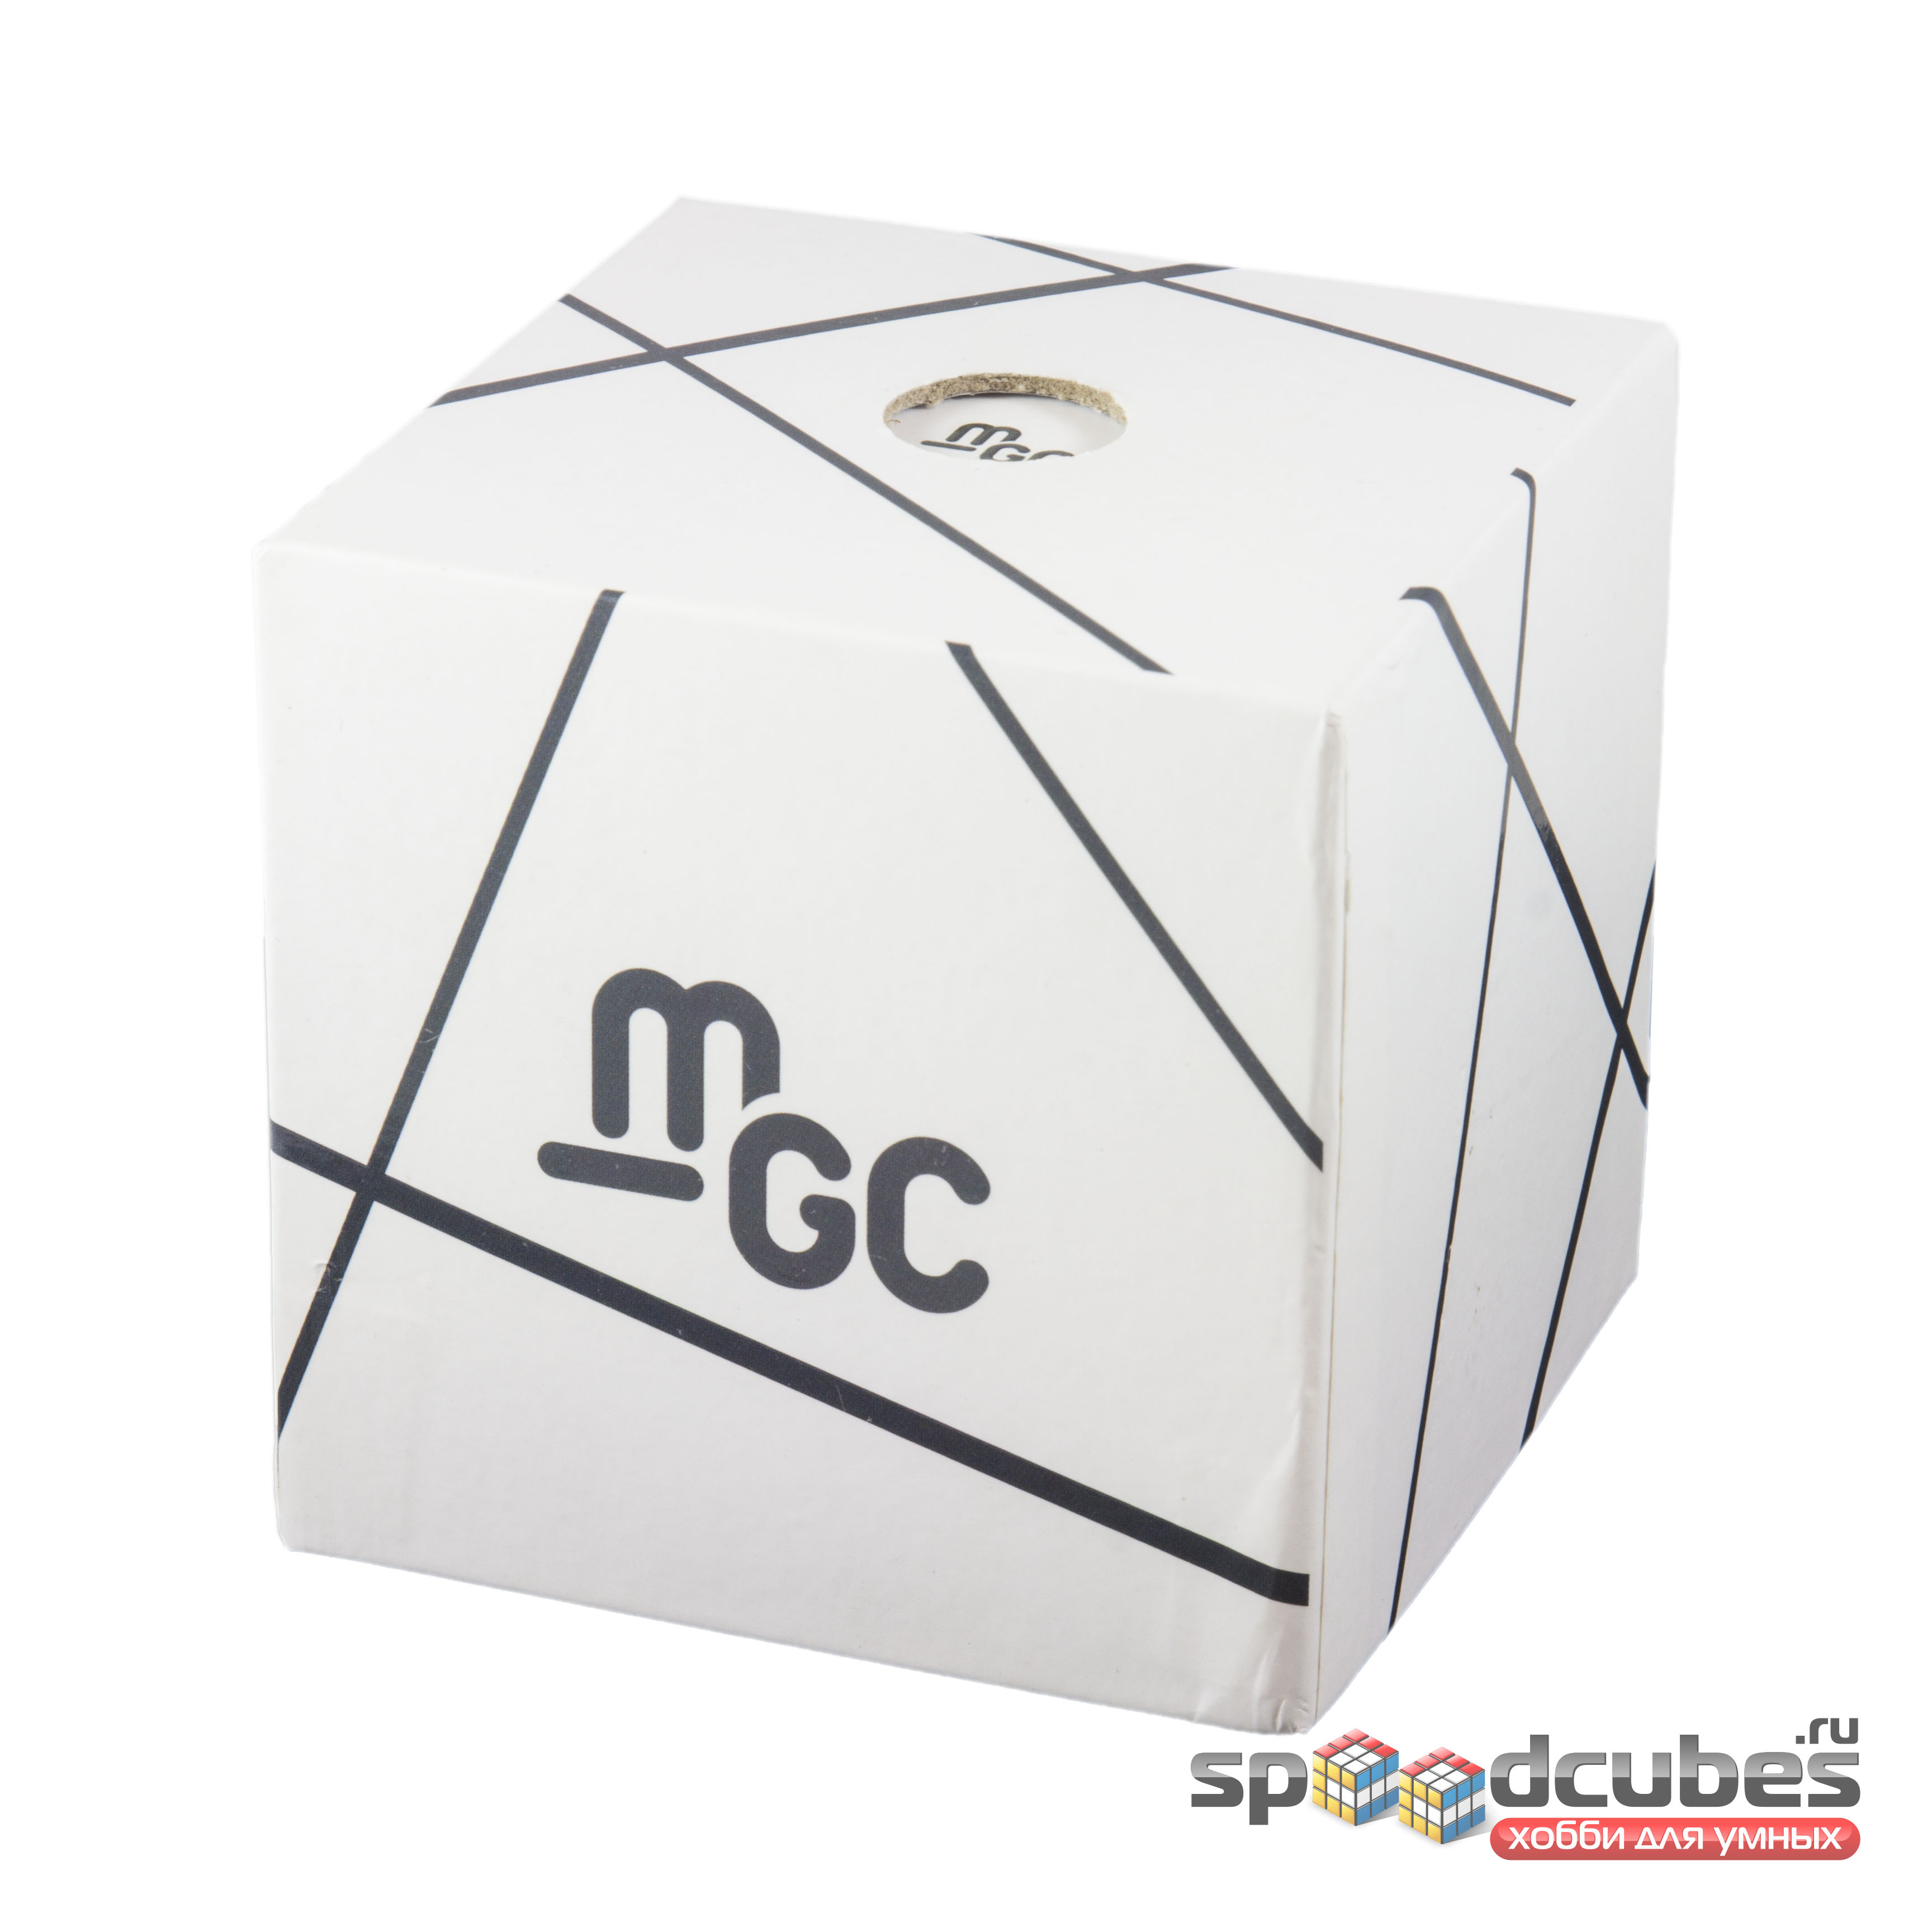 Yj Mgc 3x3x3 Magnetic 1 White